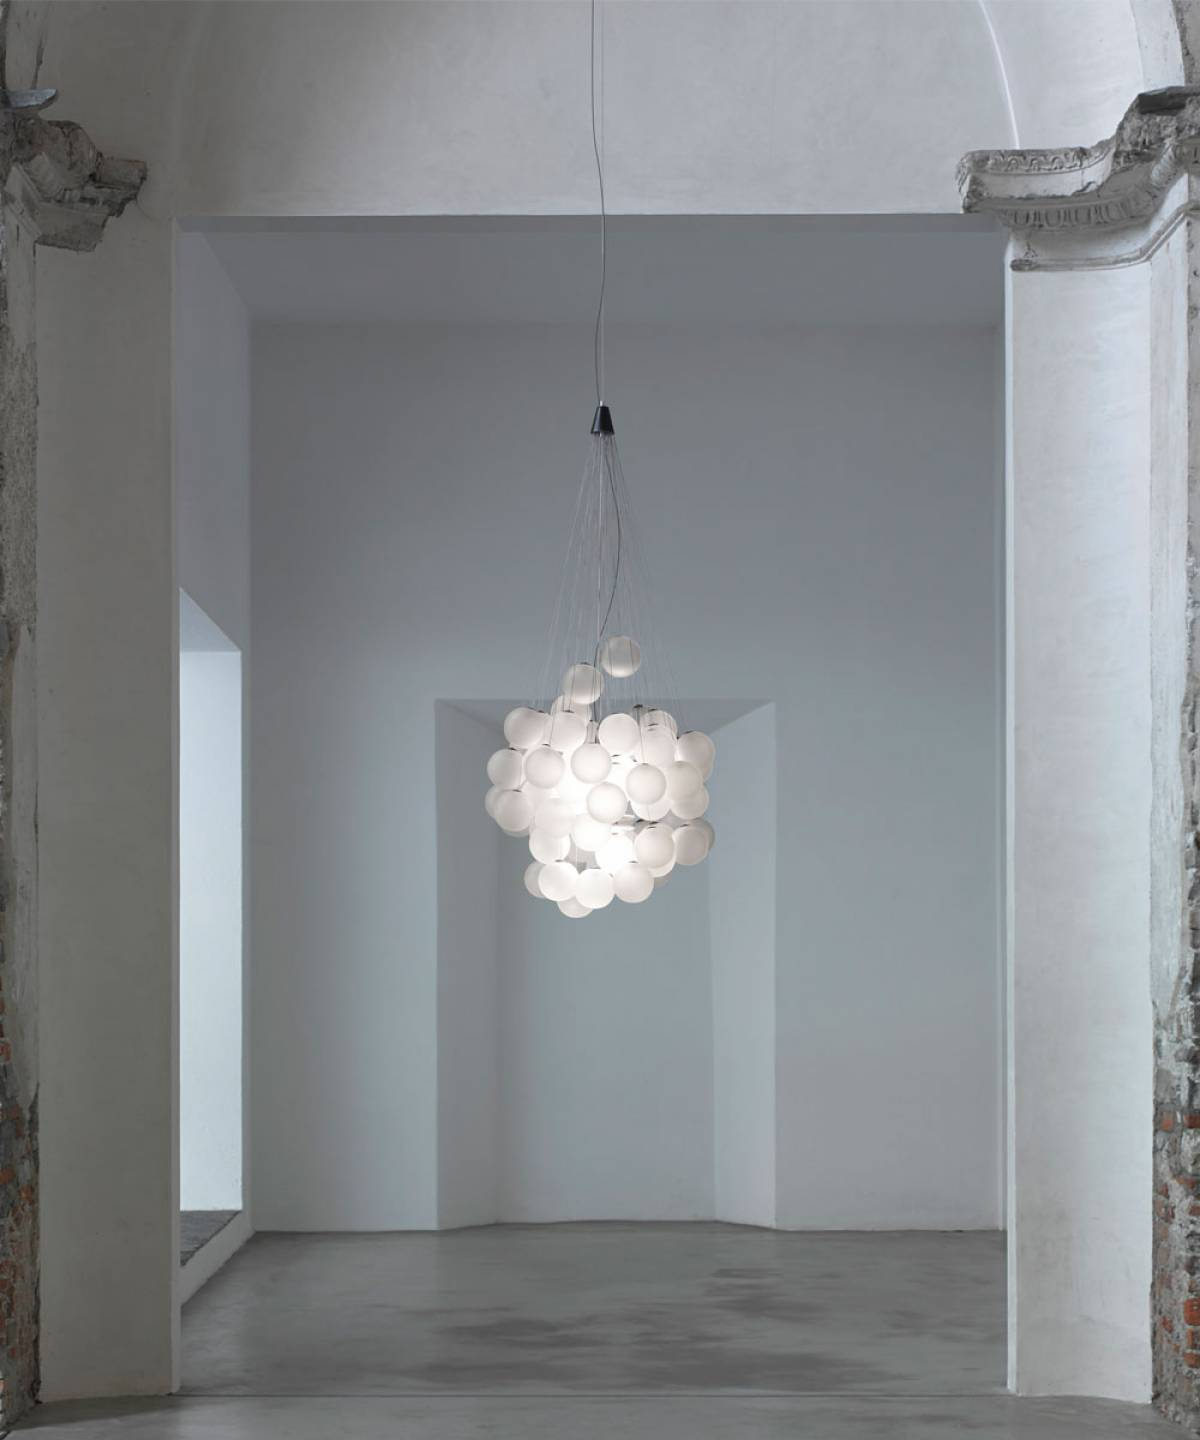 Stochastic suspension lamp Luceplan